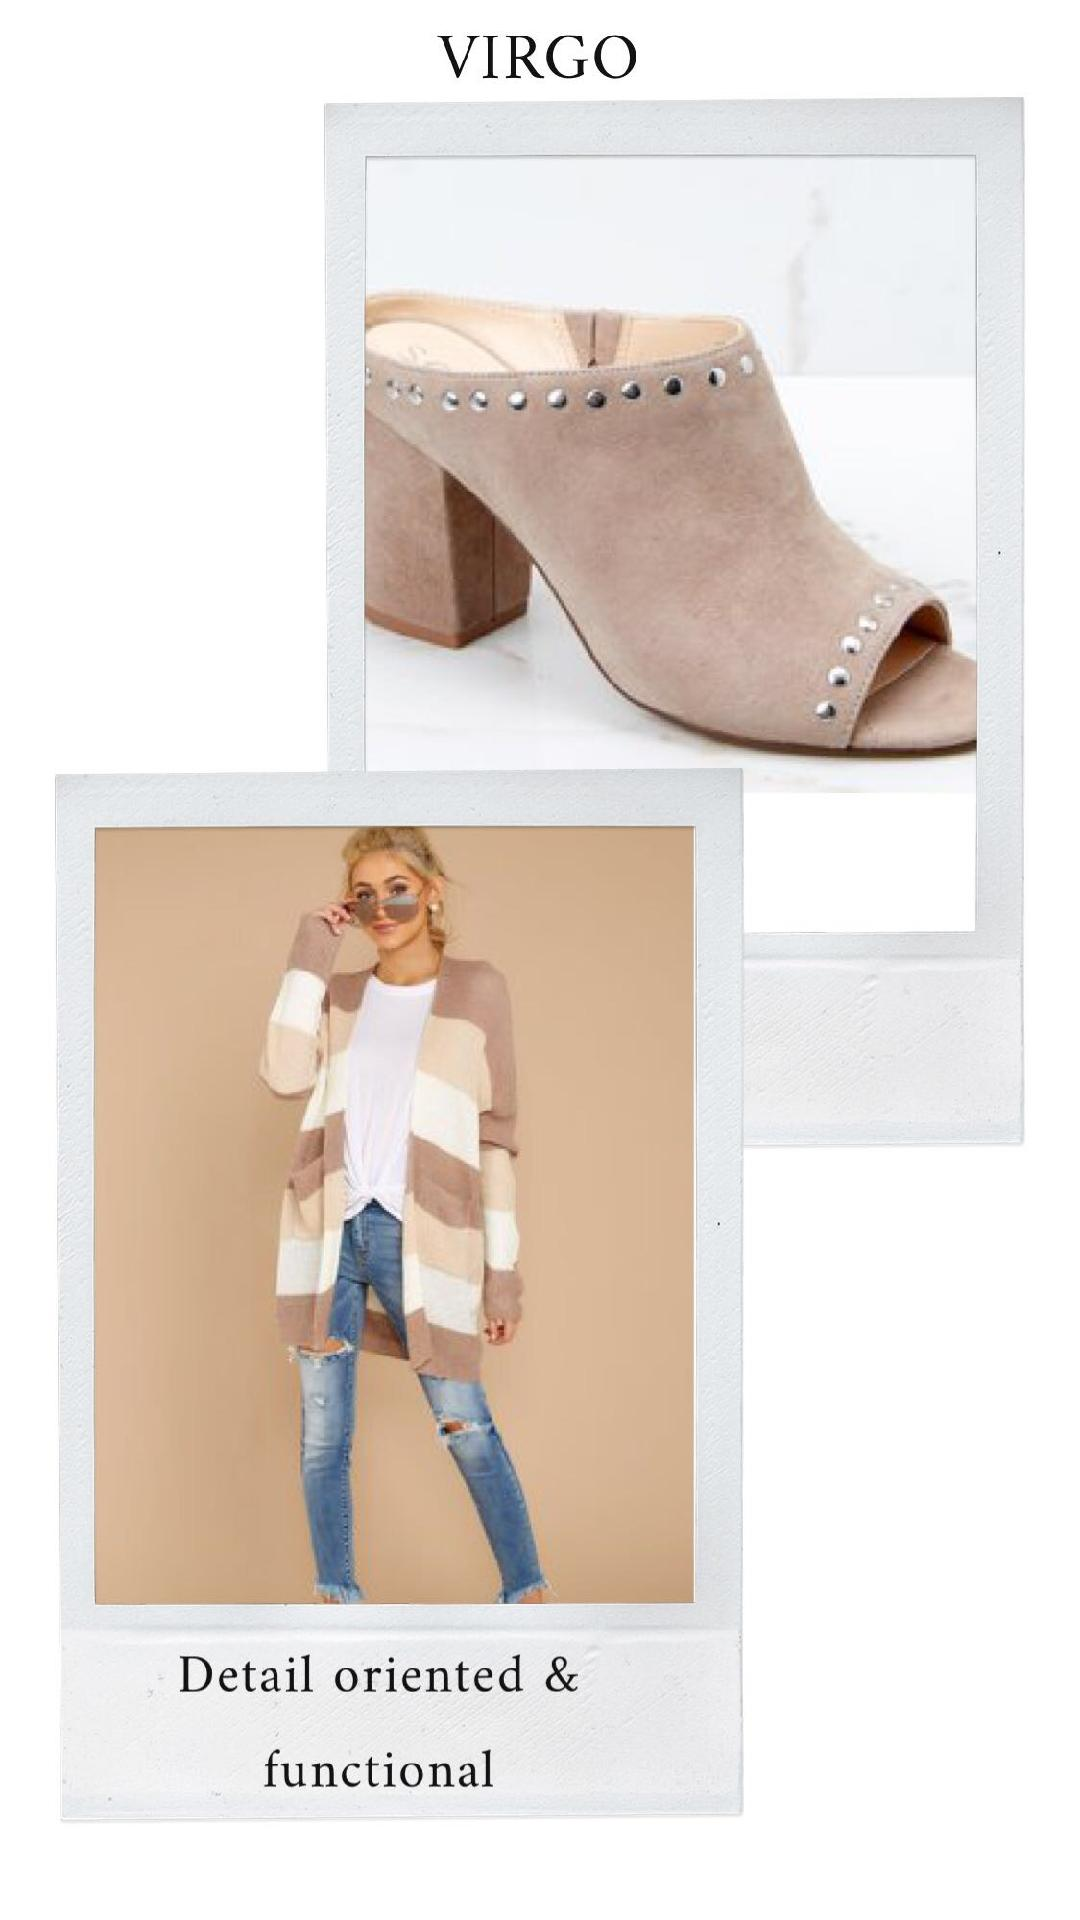 GET THE LOOK - Mocha Stripe CardiganLayce Studded Mules in Fall Taupe